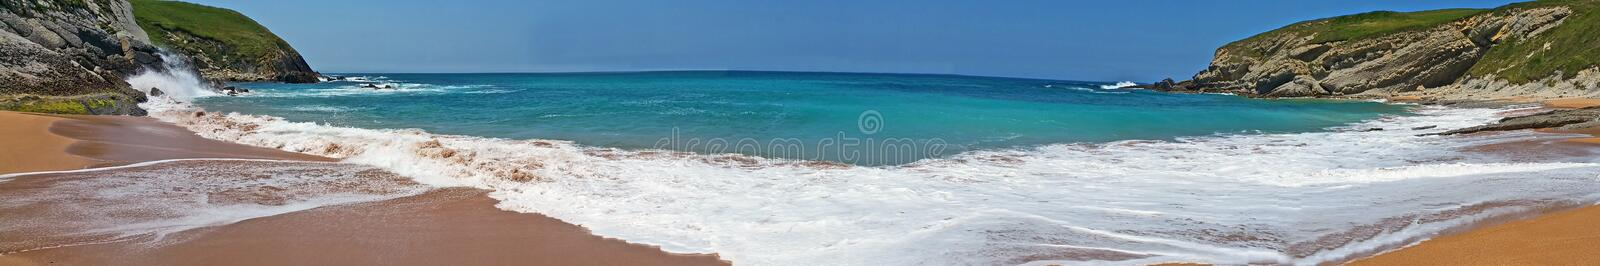 Beach with beautiful waves and blue sky, landscape. North Spain royalty free stock image